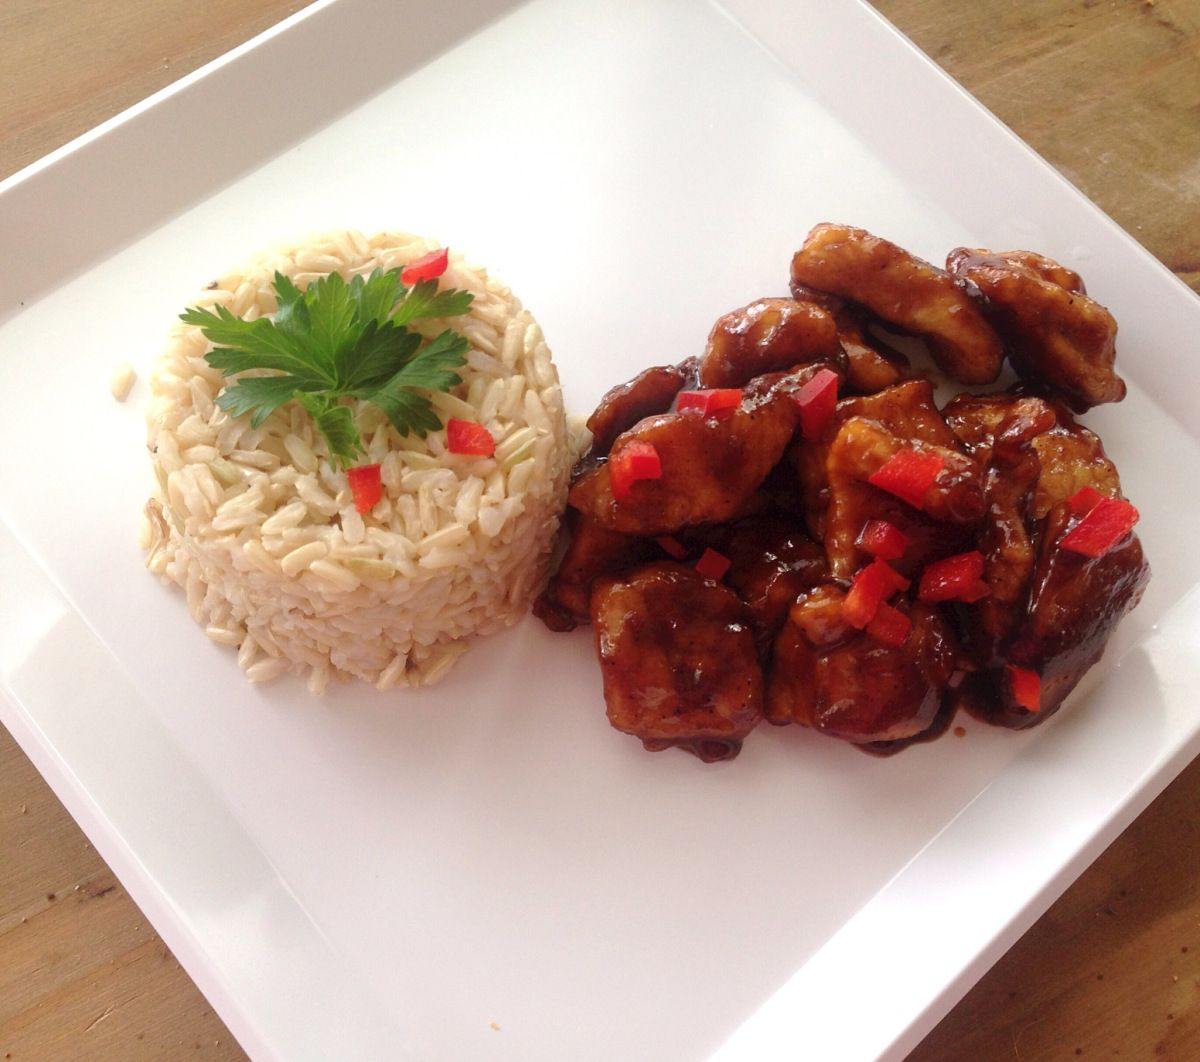 Firecracker Chicken!  So yummy and ready in less than 30 minutes!  Gluten free too!  Thyme with Lauren